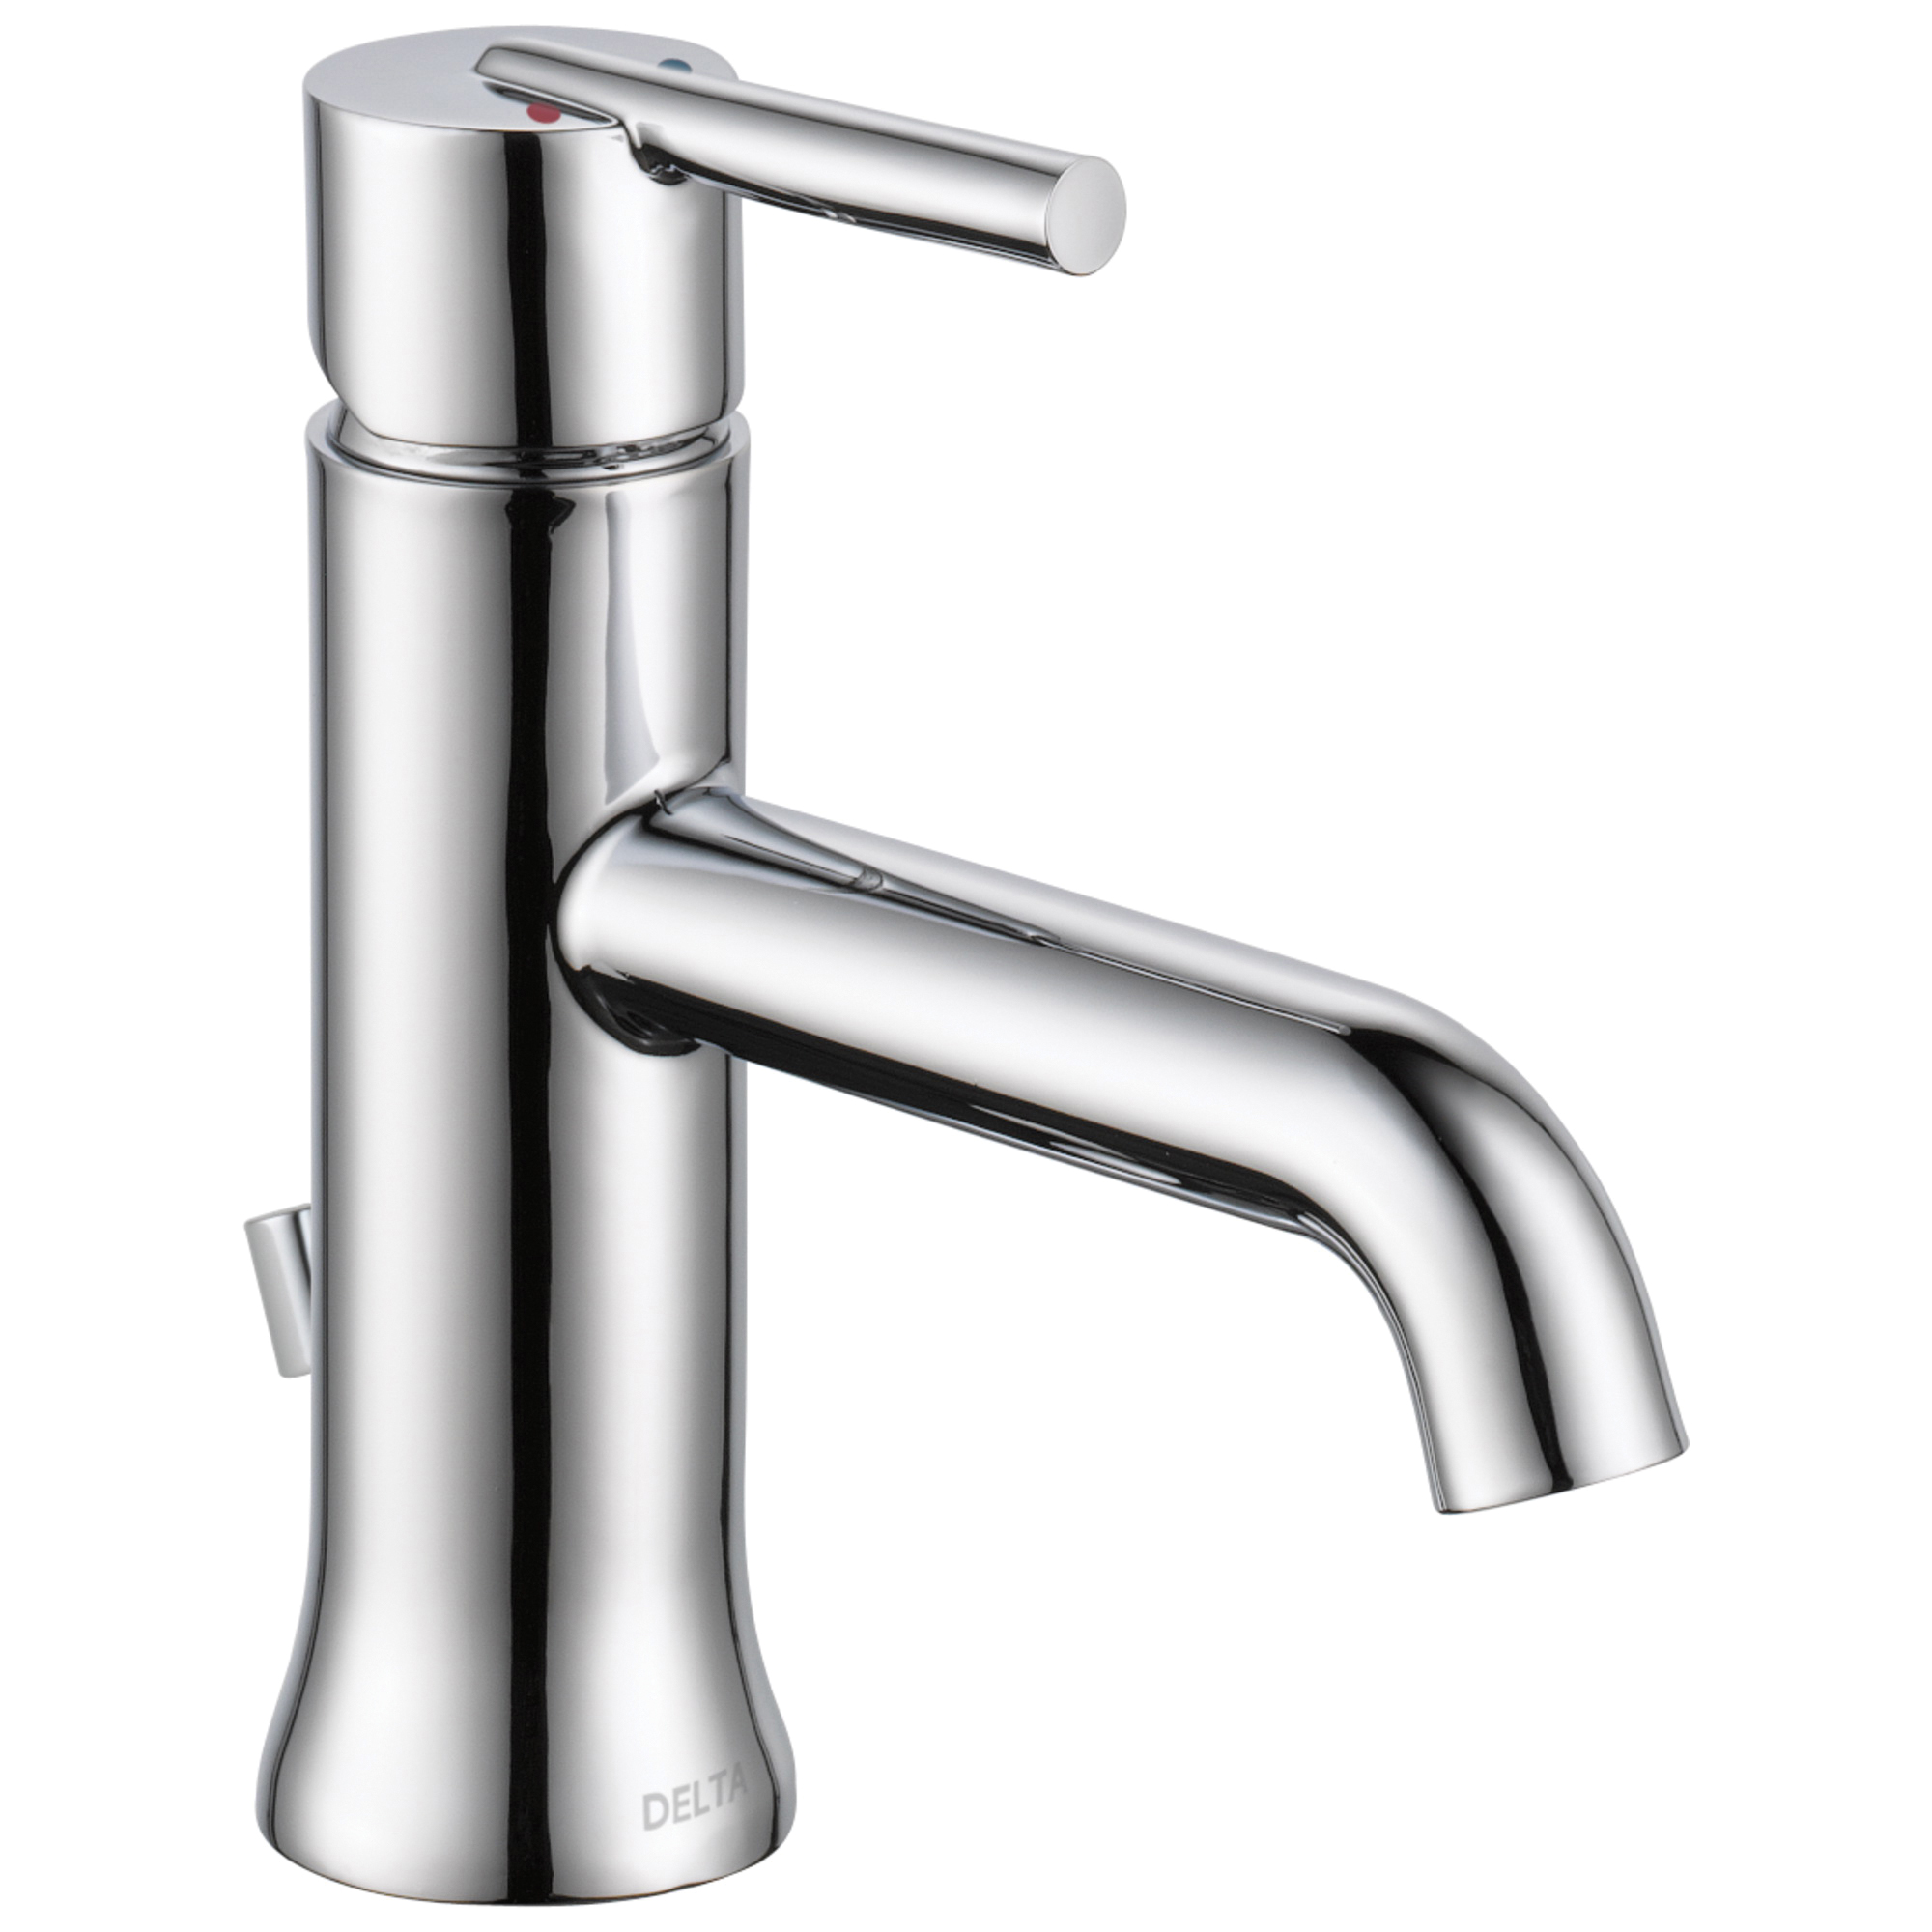 DELTA® 559LF-MPU Centerset Lavatory Faucet, Trinsic®, Chrome Plated, 1 Handles, Metal Pop-Up Drain, 1.2 gpm